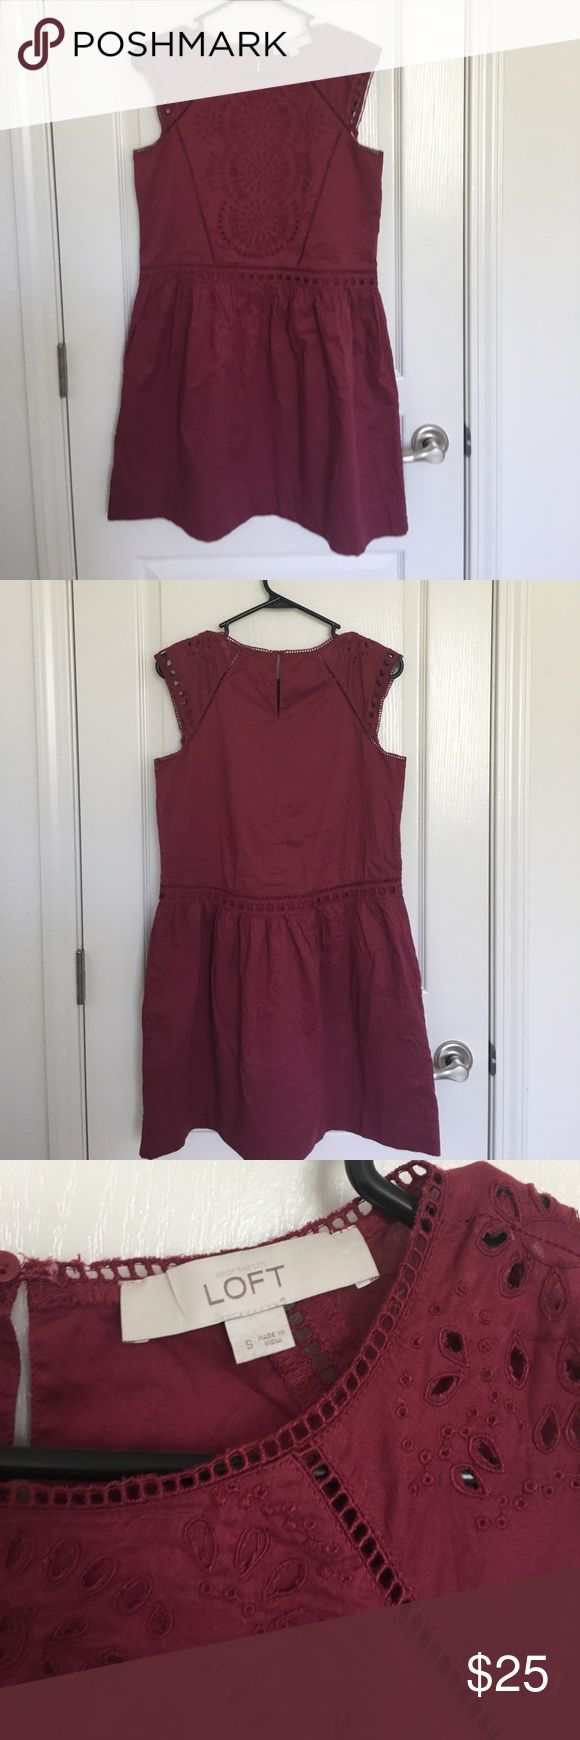 """Loft Eyelet Dress Sz Small Maroon Eyelet dress. Cotton. Lined. Keyhole button closure at back. Length is 34"""". Bust and waist both measure 17"""" across. Only signs of wear is some loose threads throughout, otherwise is in good condition. No trades or PayPal. LOFT Dresses Mini"""